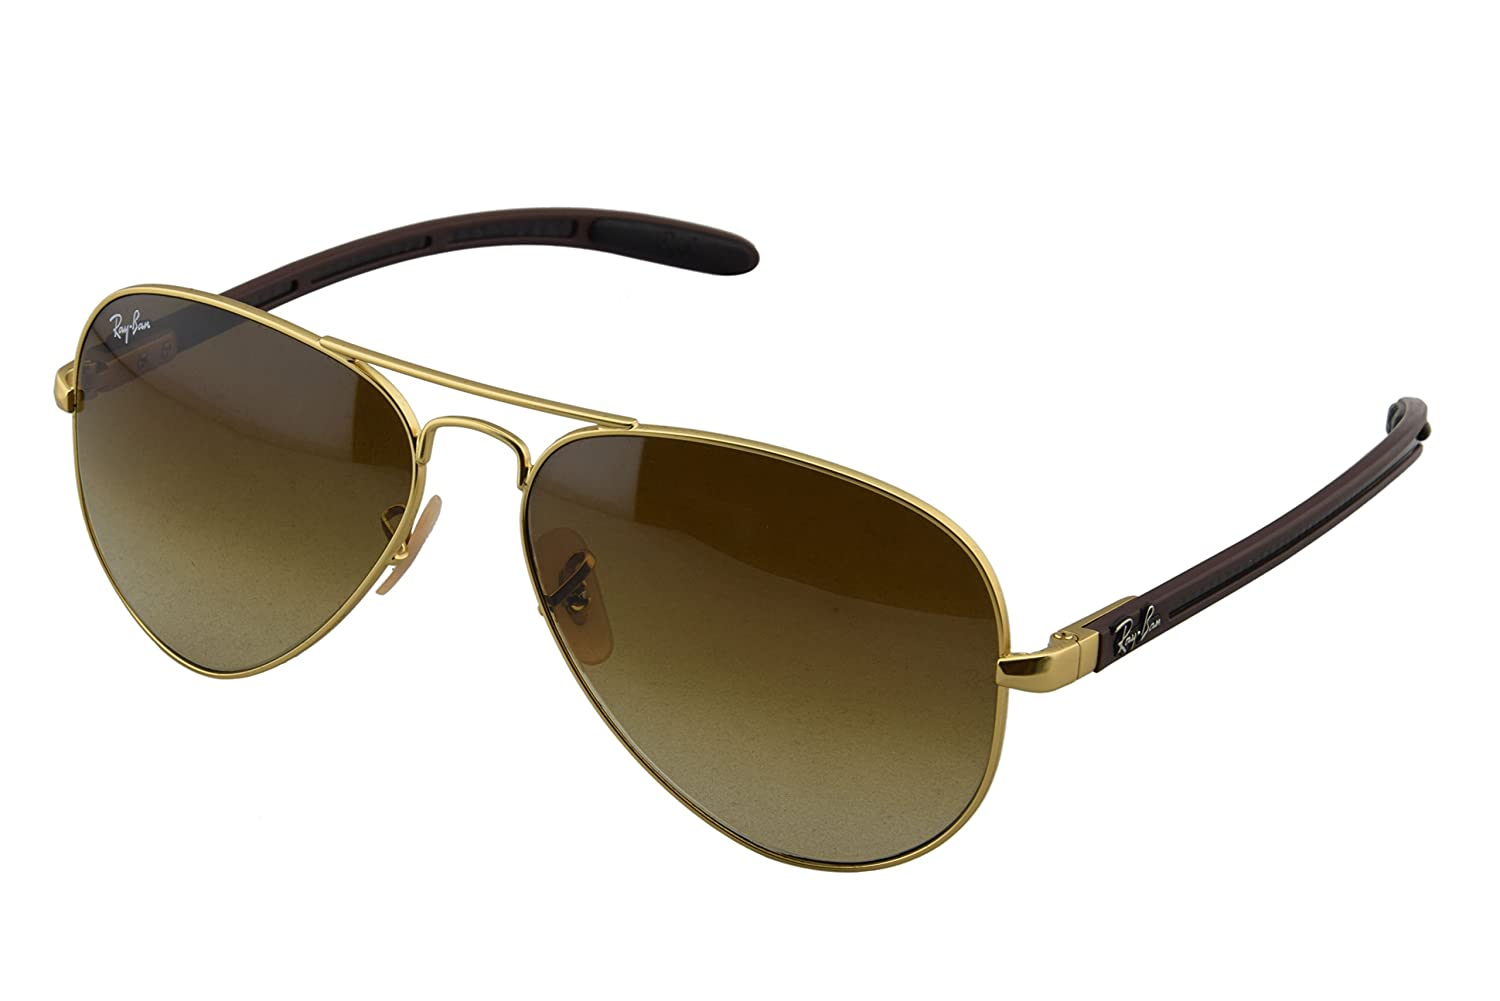 Amazon.com: Ray-Ban Men\u0026#39;s RB8307-029/71 Aviator Carbon Fibre Oval Sunglasses,Matte Gold,58 mm: Clothing